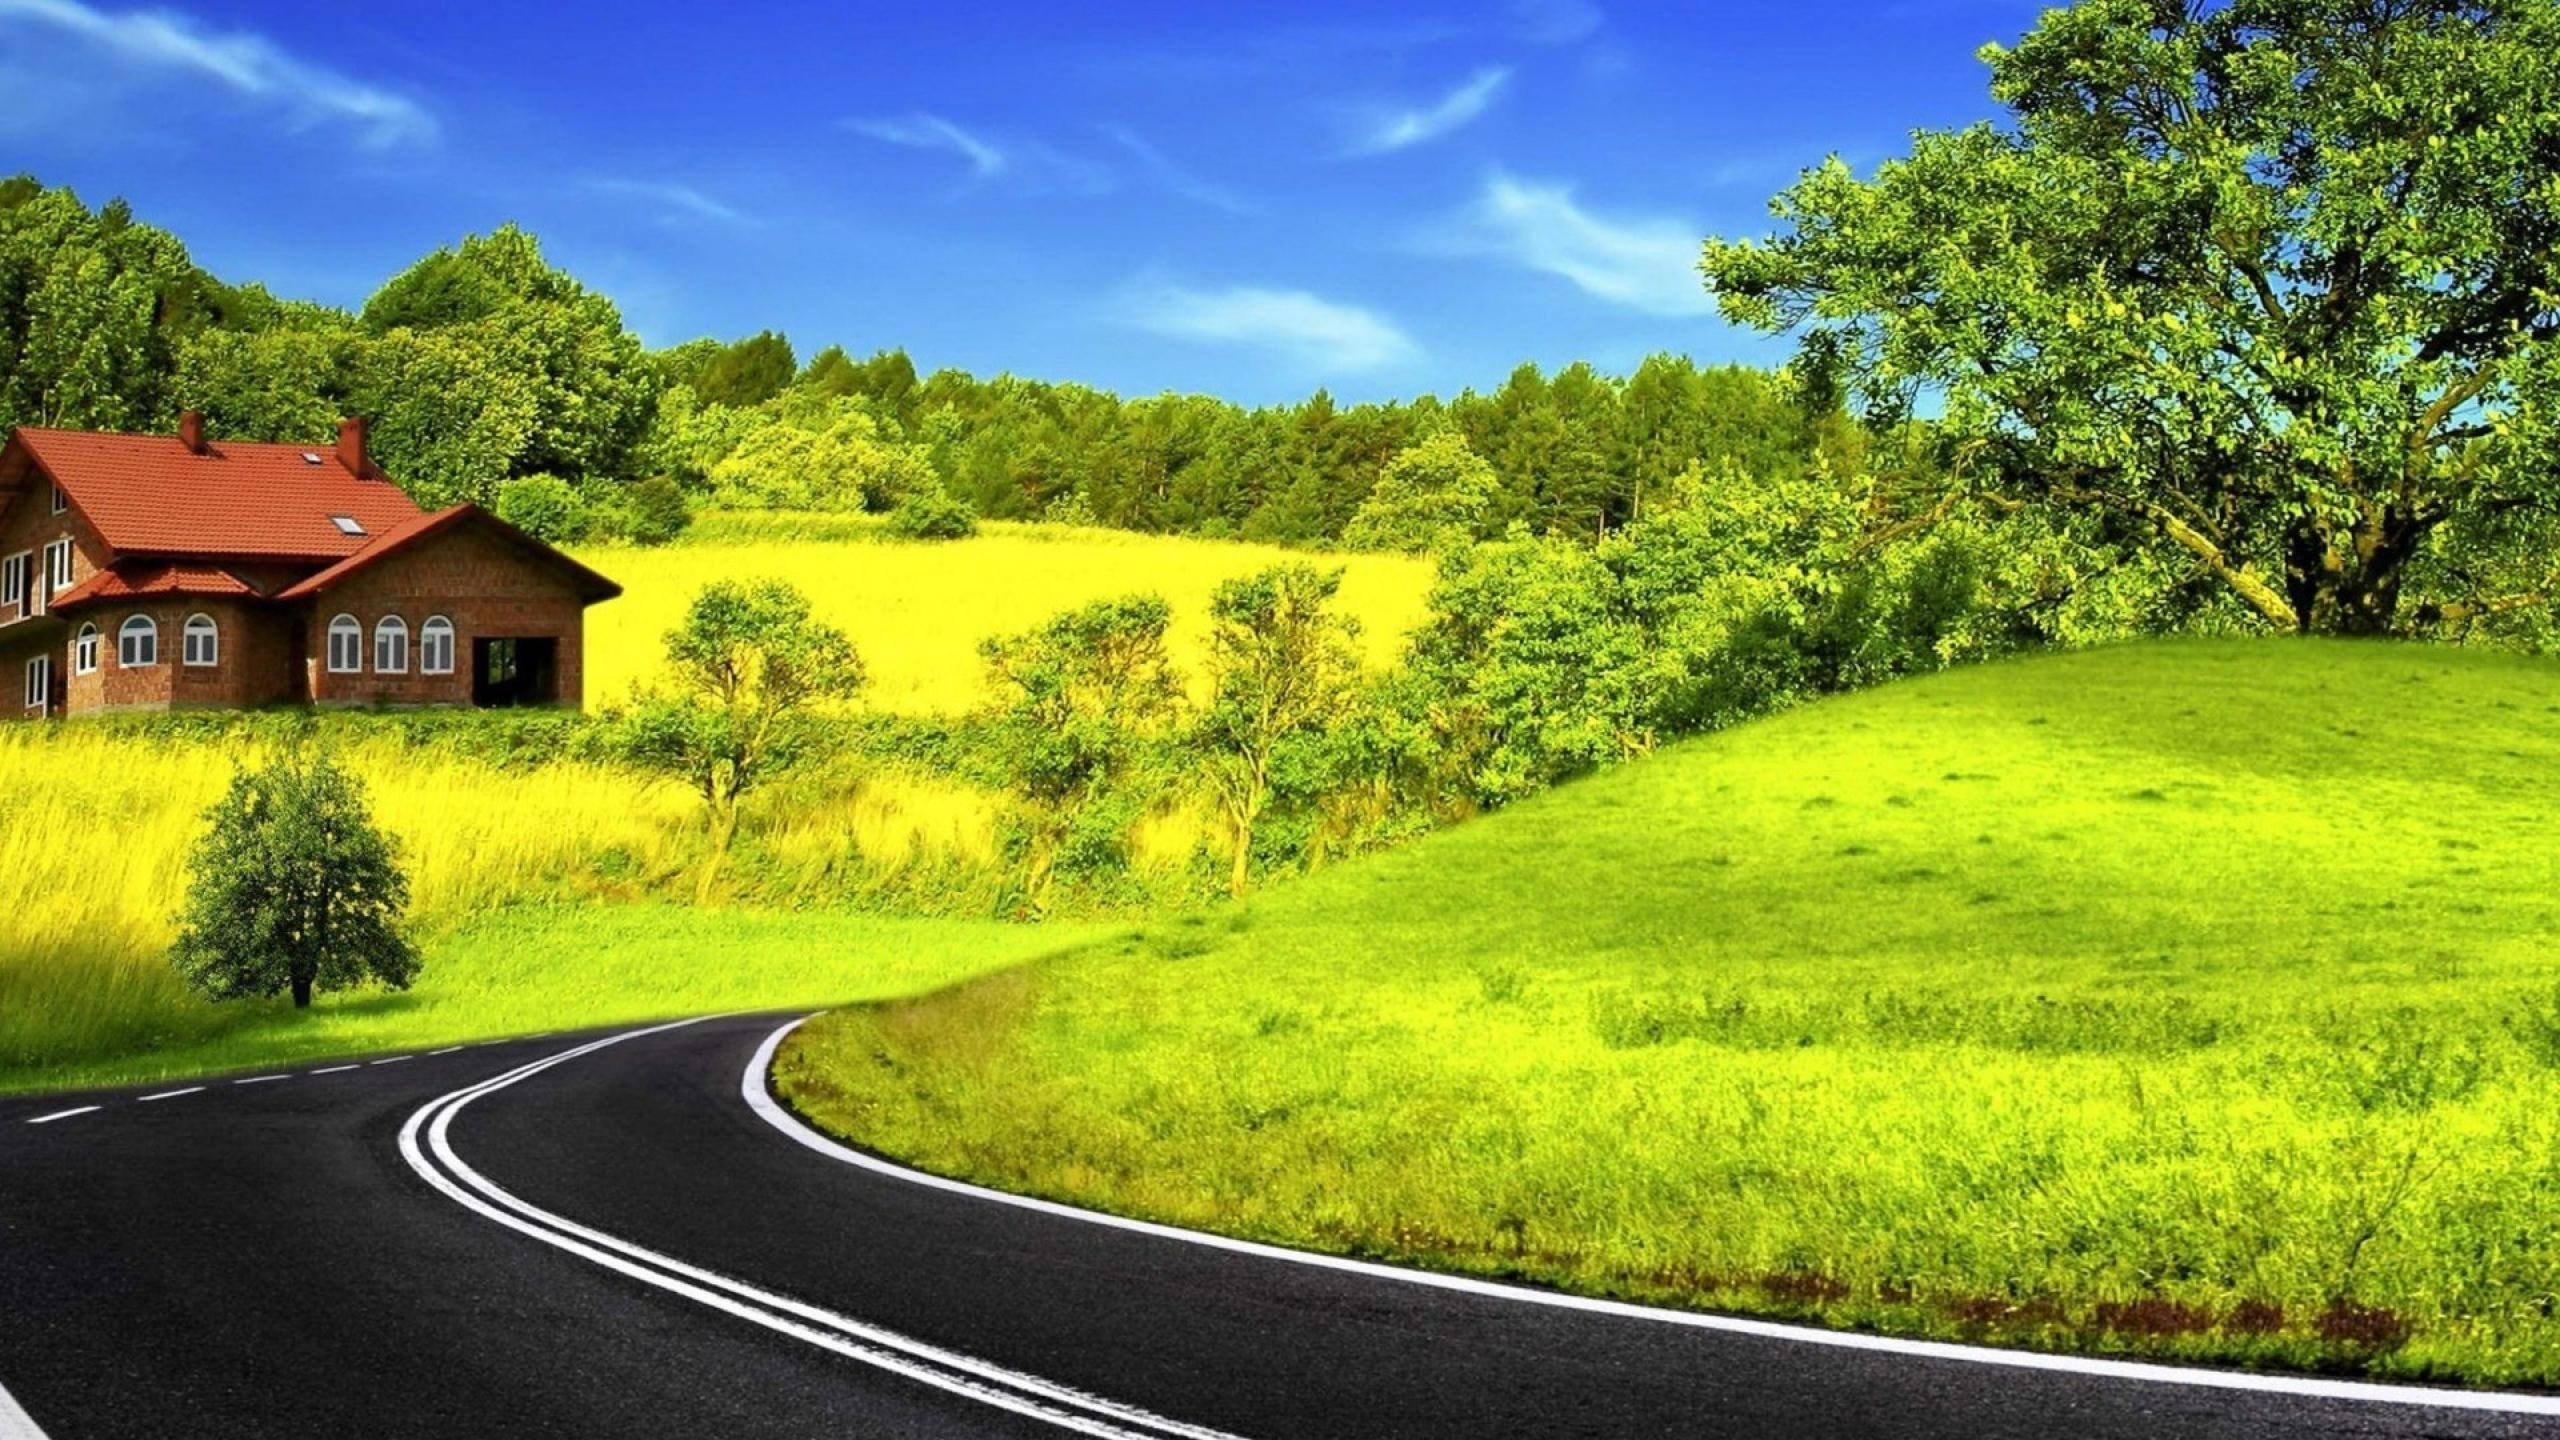 2560x1440 Road Background Nature Wallpaper